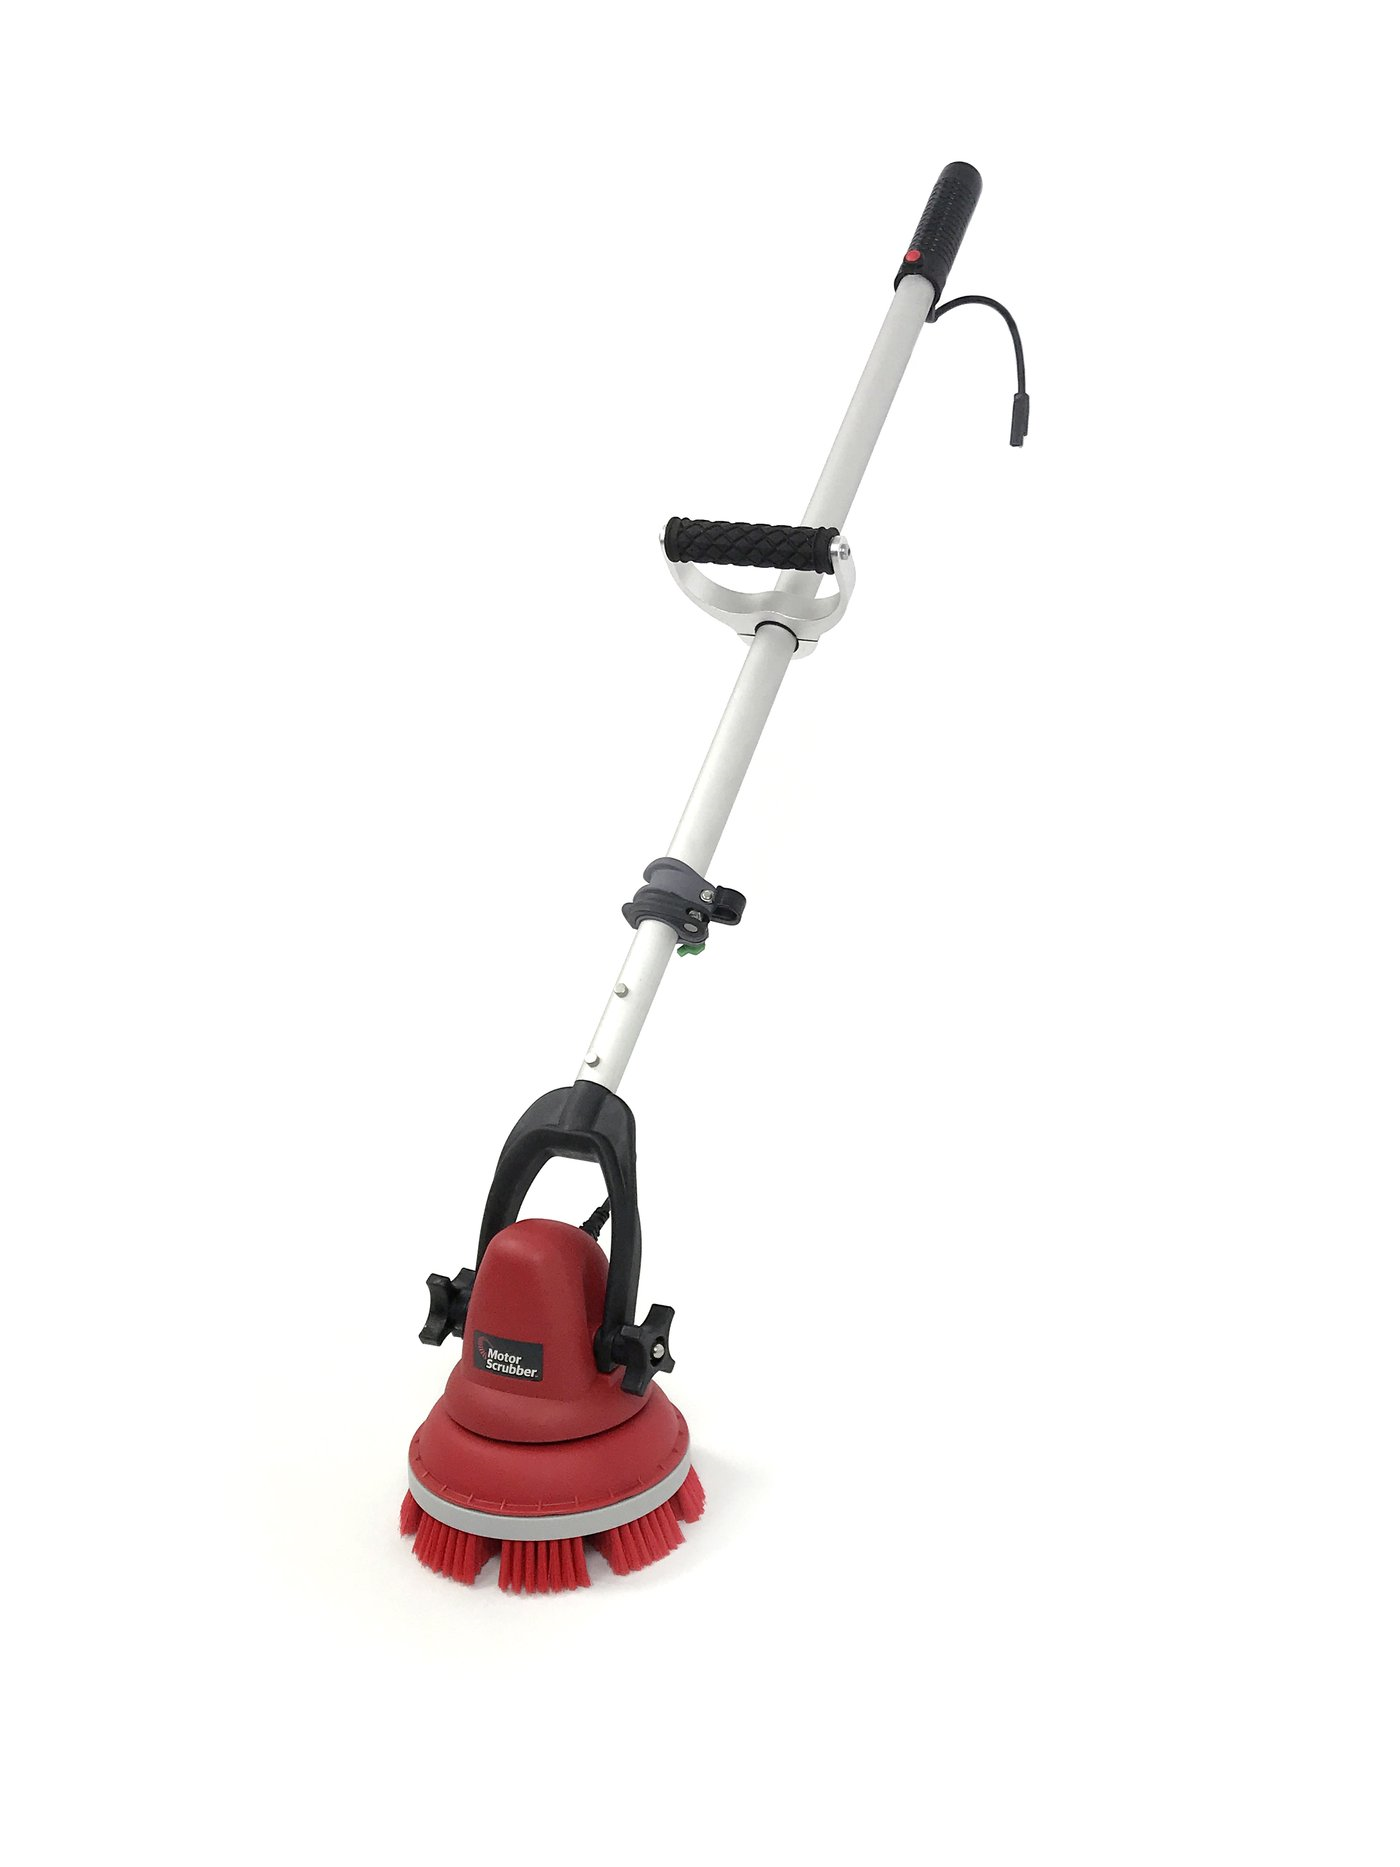 Ms2000m Motorscrubber Cordless Battery Operated Cleaning